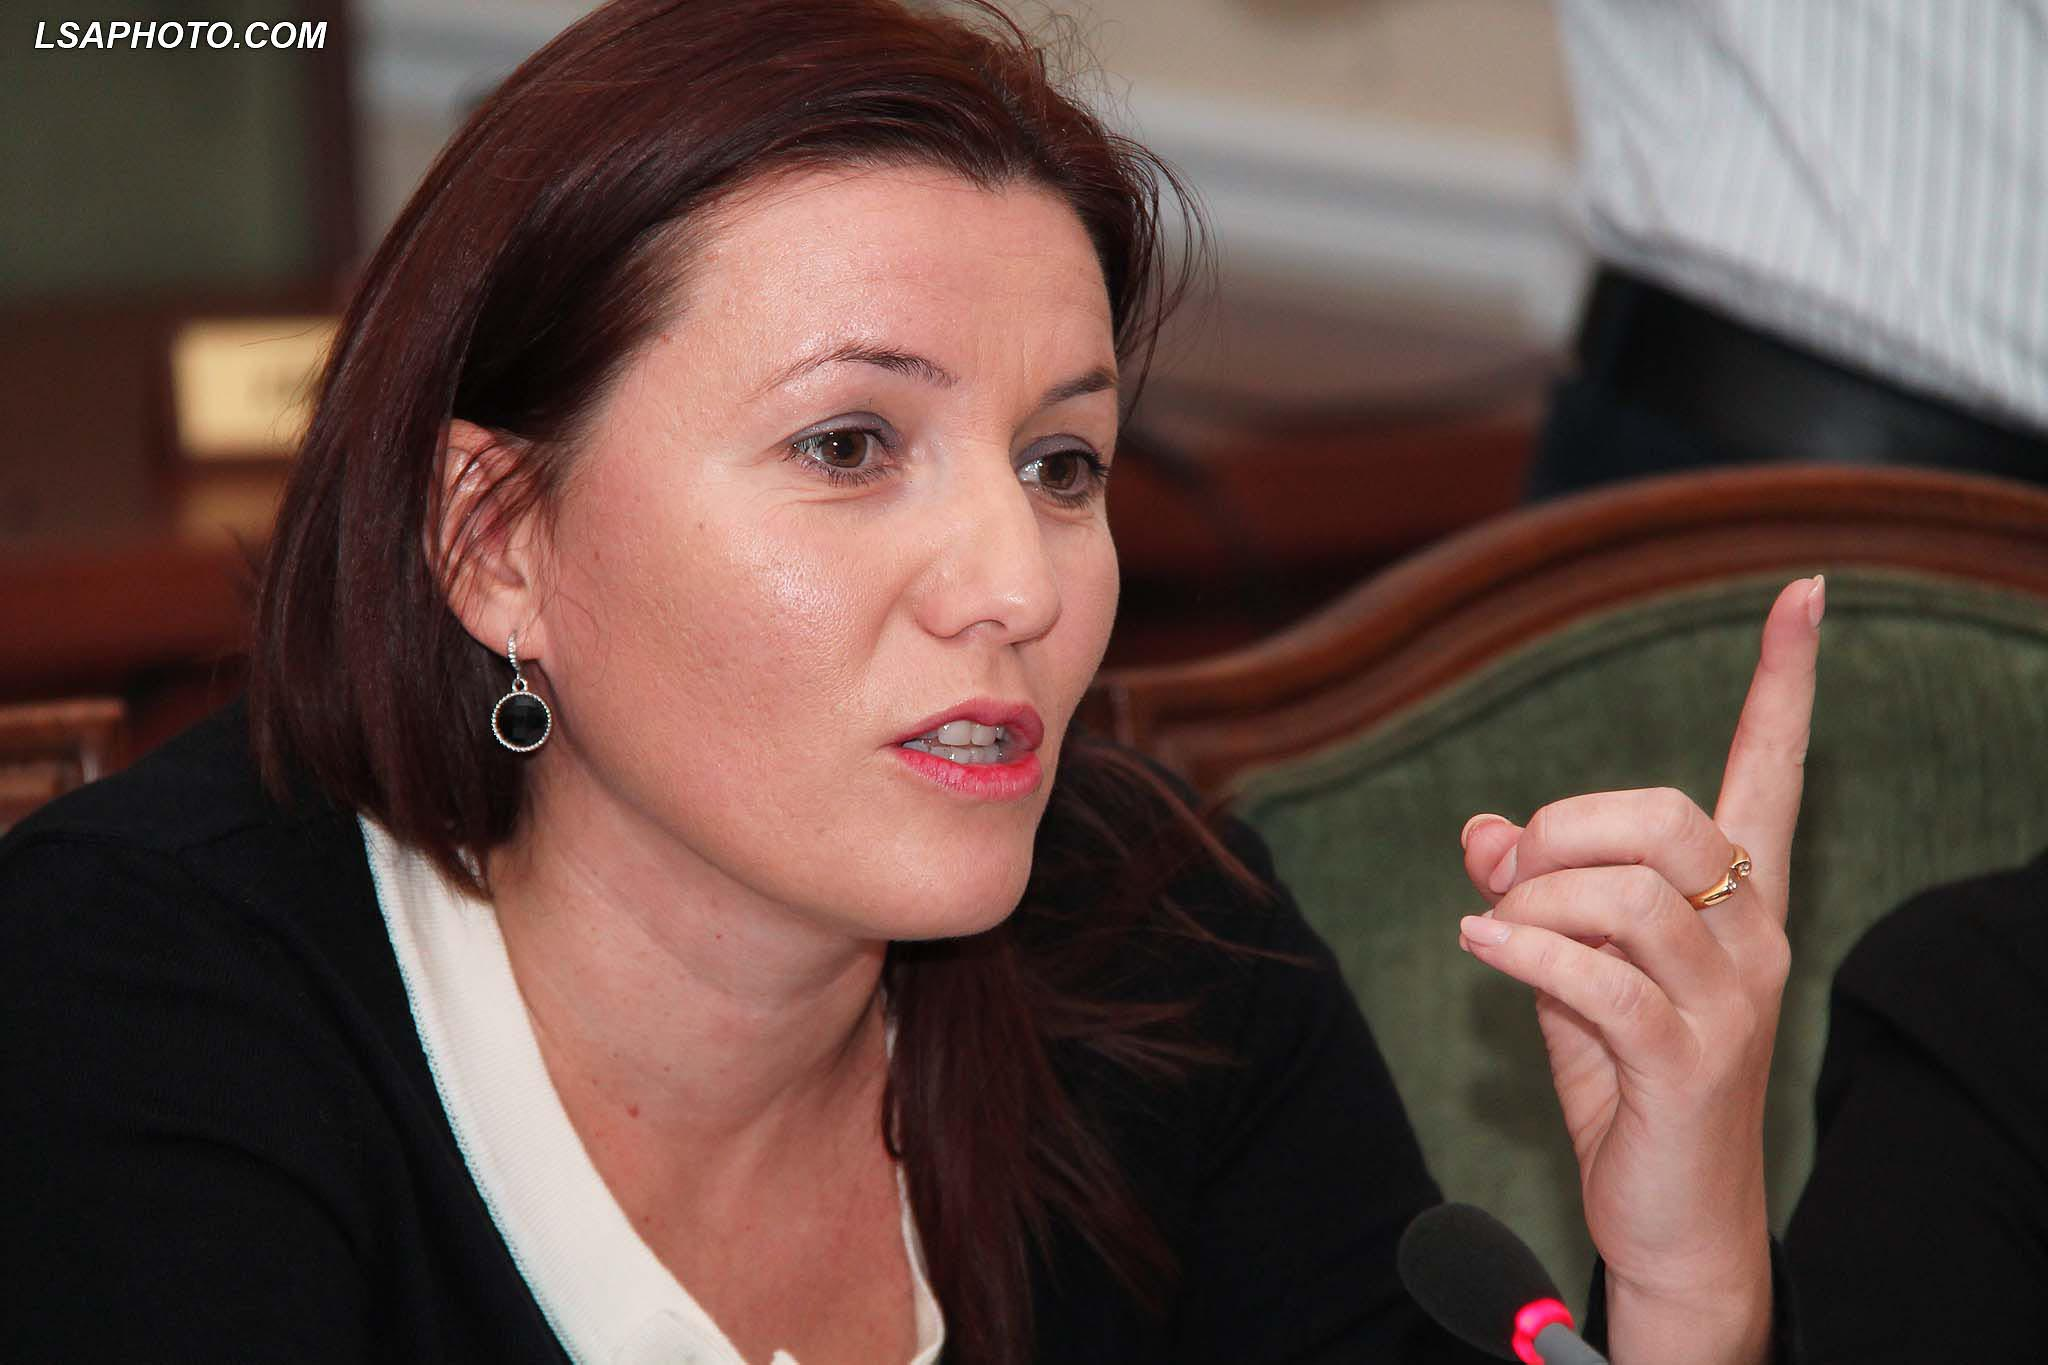 EU integration: Parliamentary committee chairwoman issues a strong warning